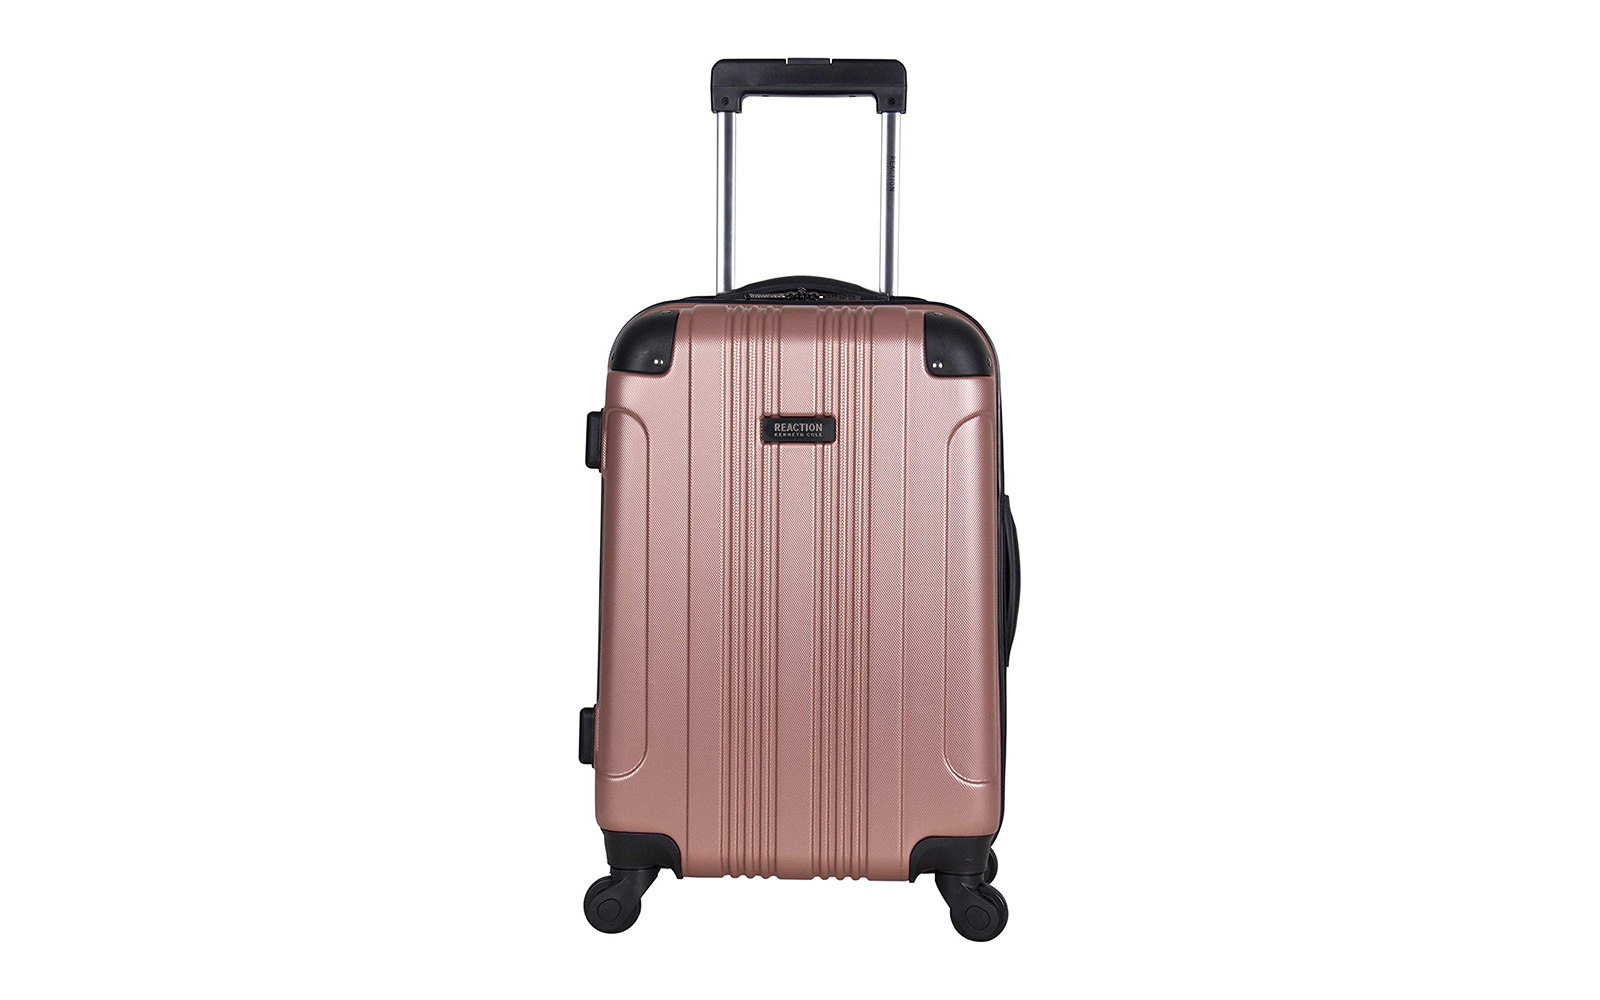 Kenneth Cole 20-Inch Carry-On Lightweight Hardshell 4-Wheel